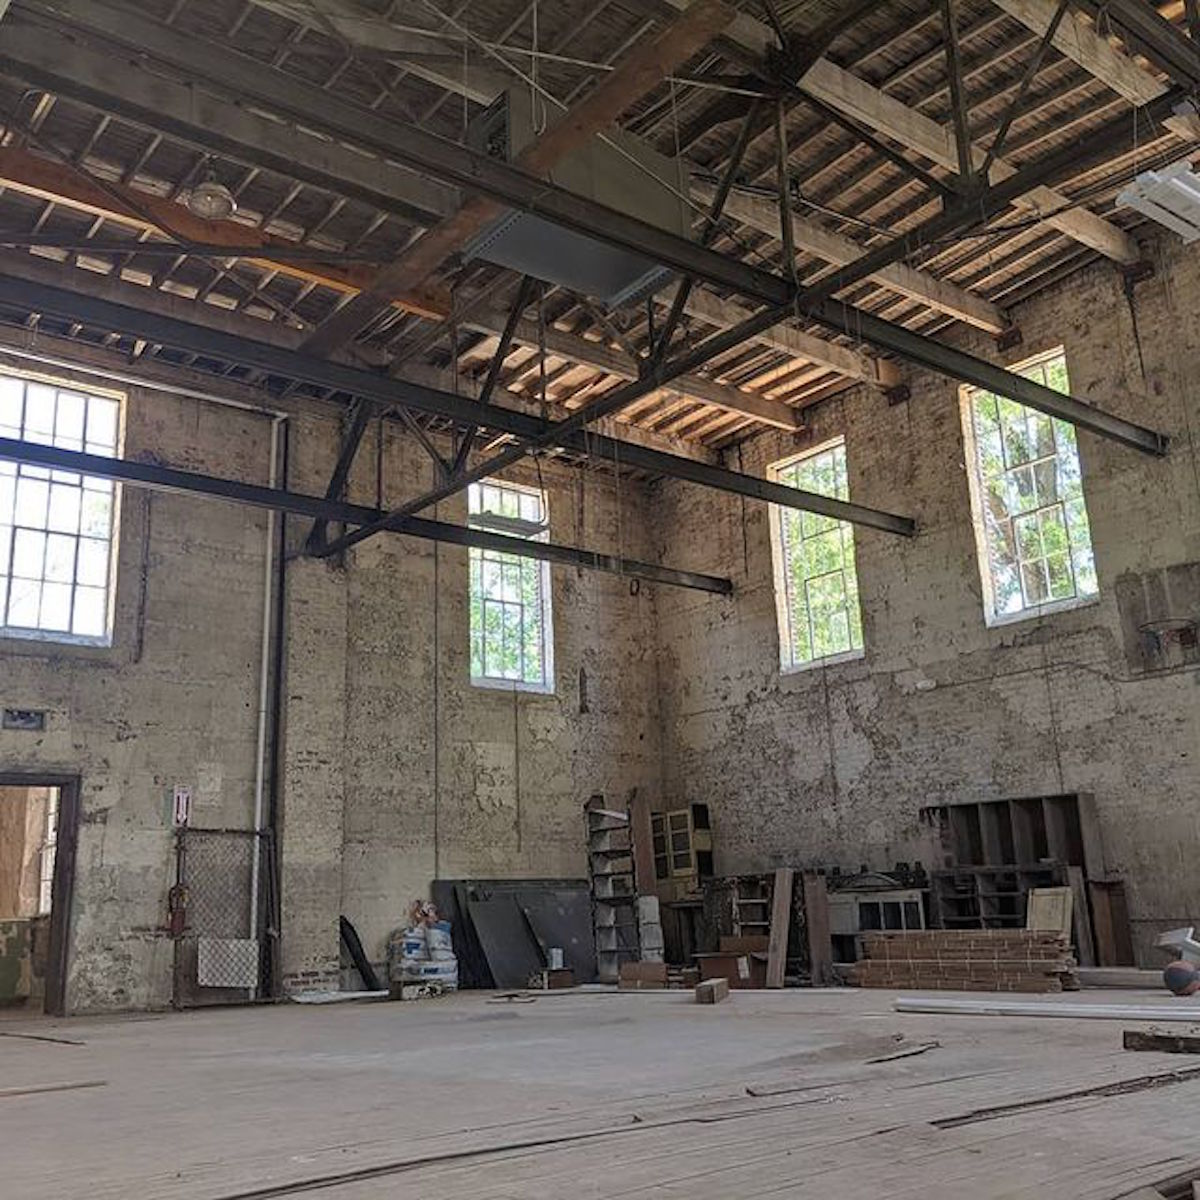 Cafe and Event Space Darling Josephine to Open in Historic School Building